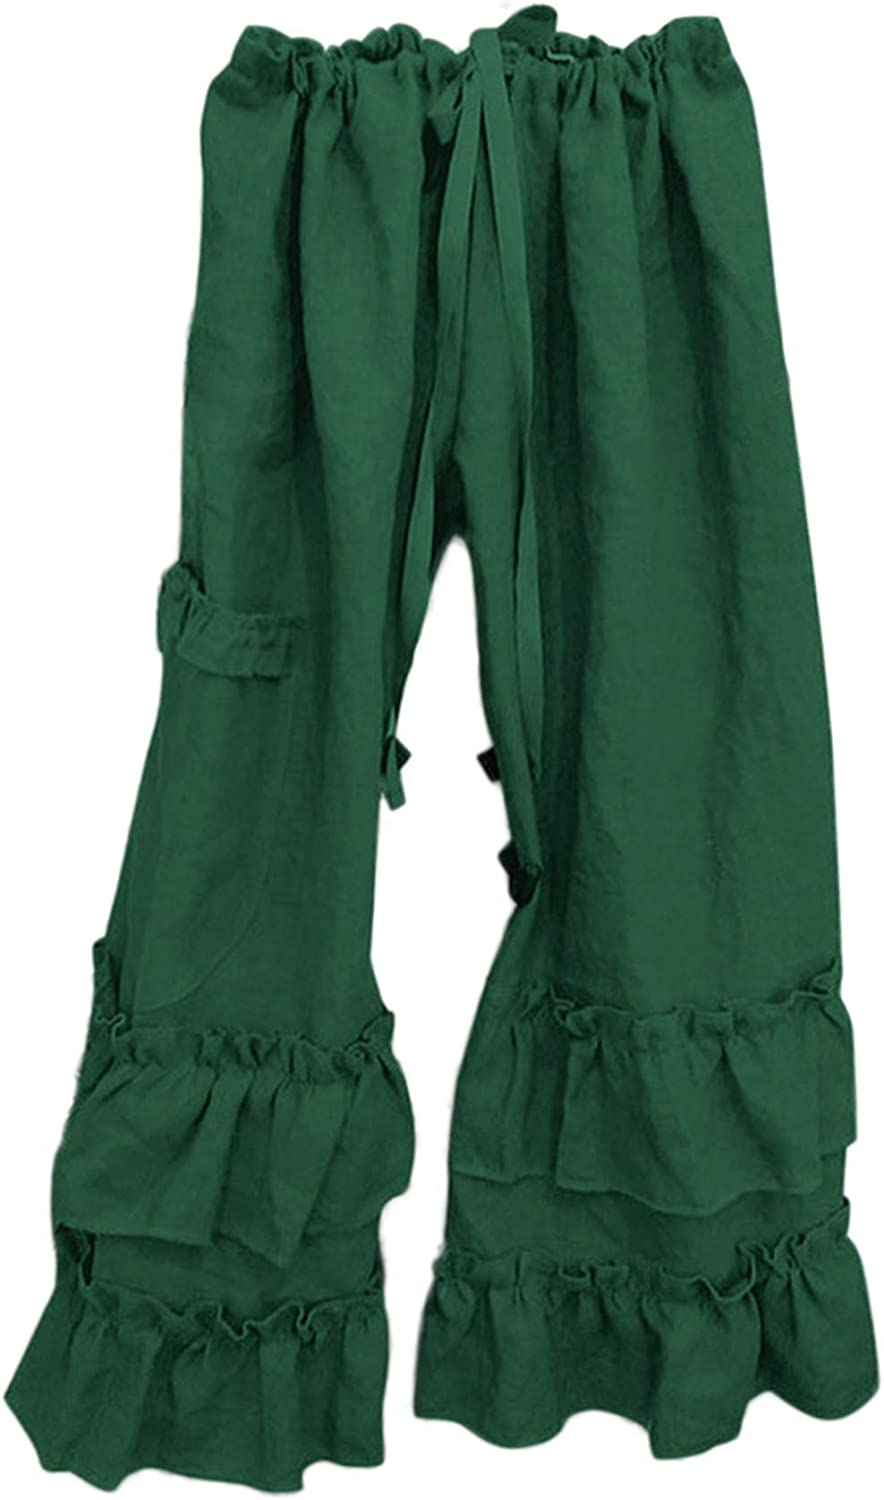 Andongnywell Women's High Waist Casual Pants Drawstring Stretchy Loose Baggy Long Lounge Pants with Pockets Trousers